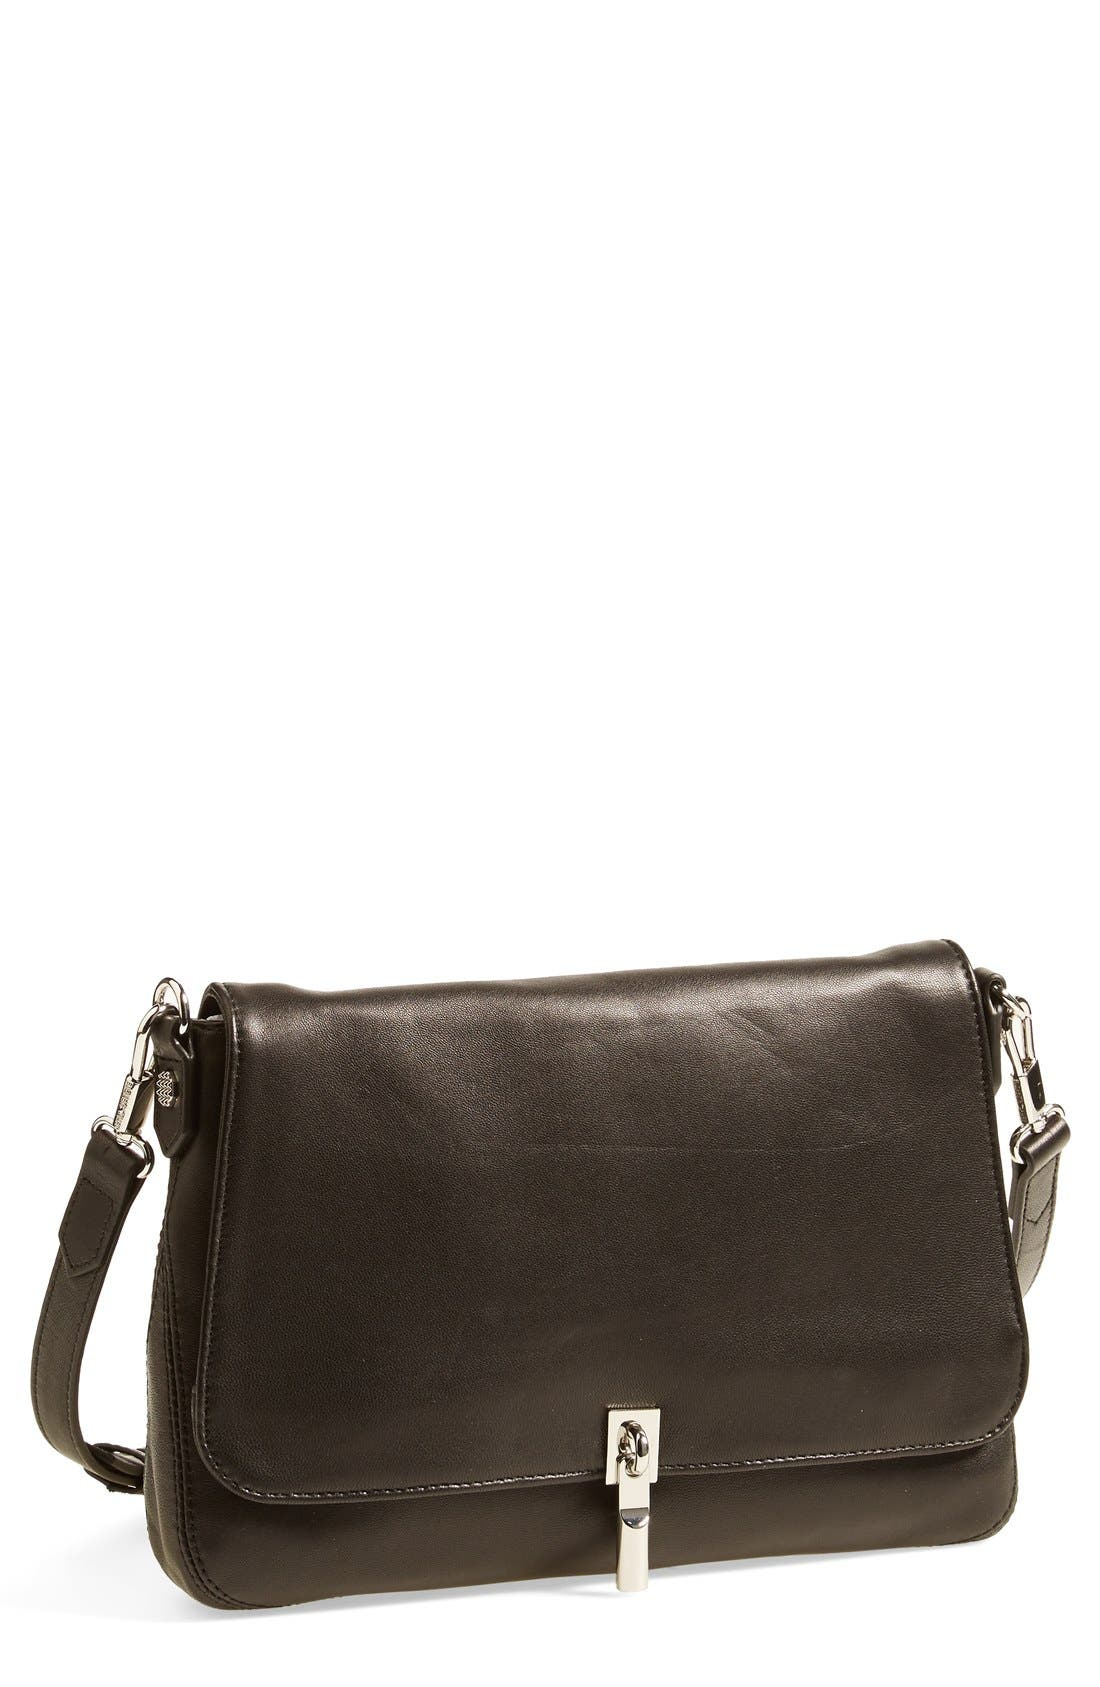 Alternate Image 1 Selected - Elizabeth and James 'Mini Cynnie' Leather Crossbody Bag